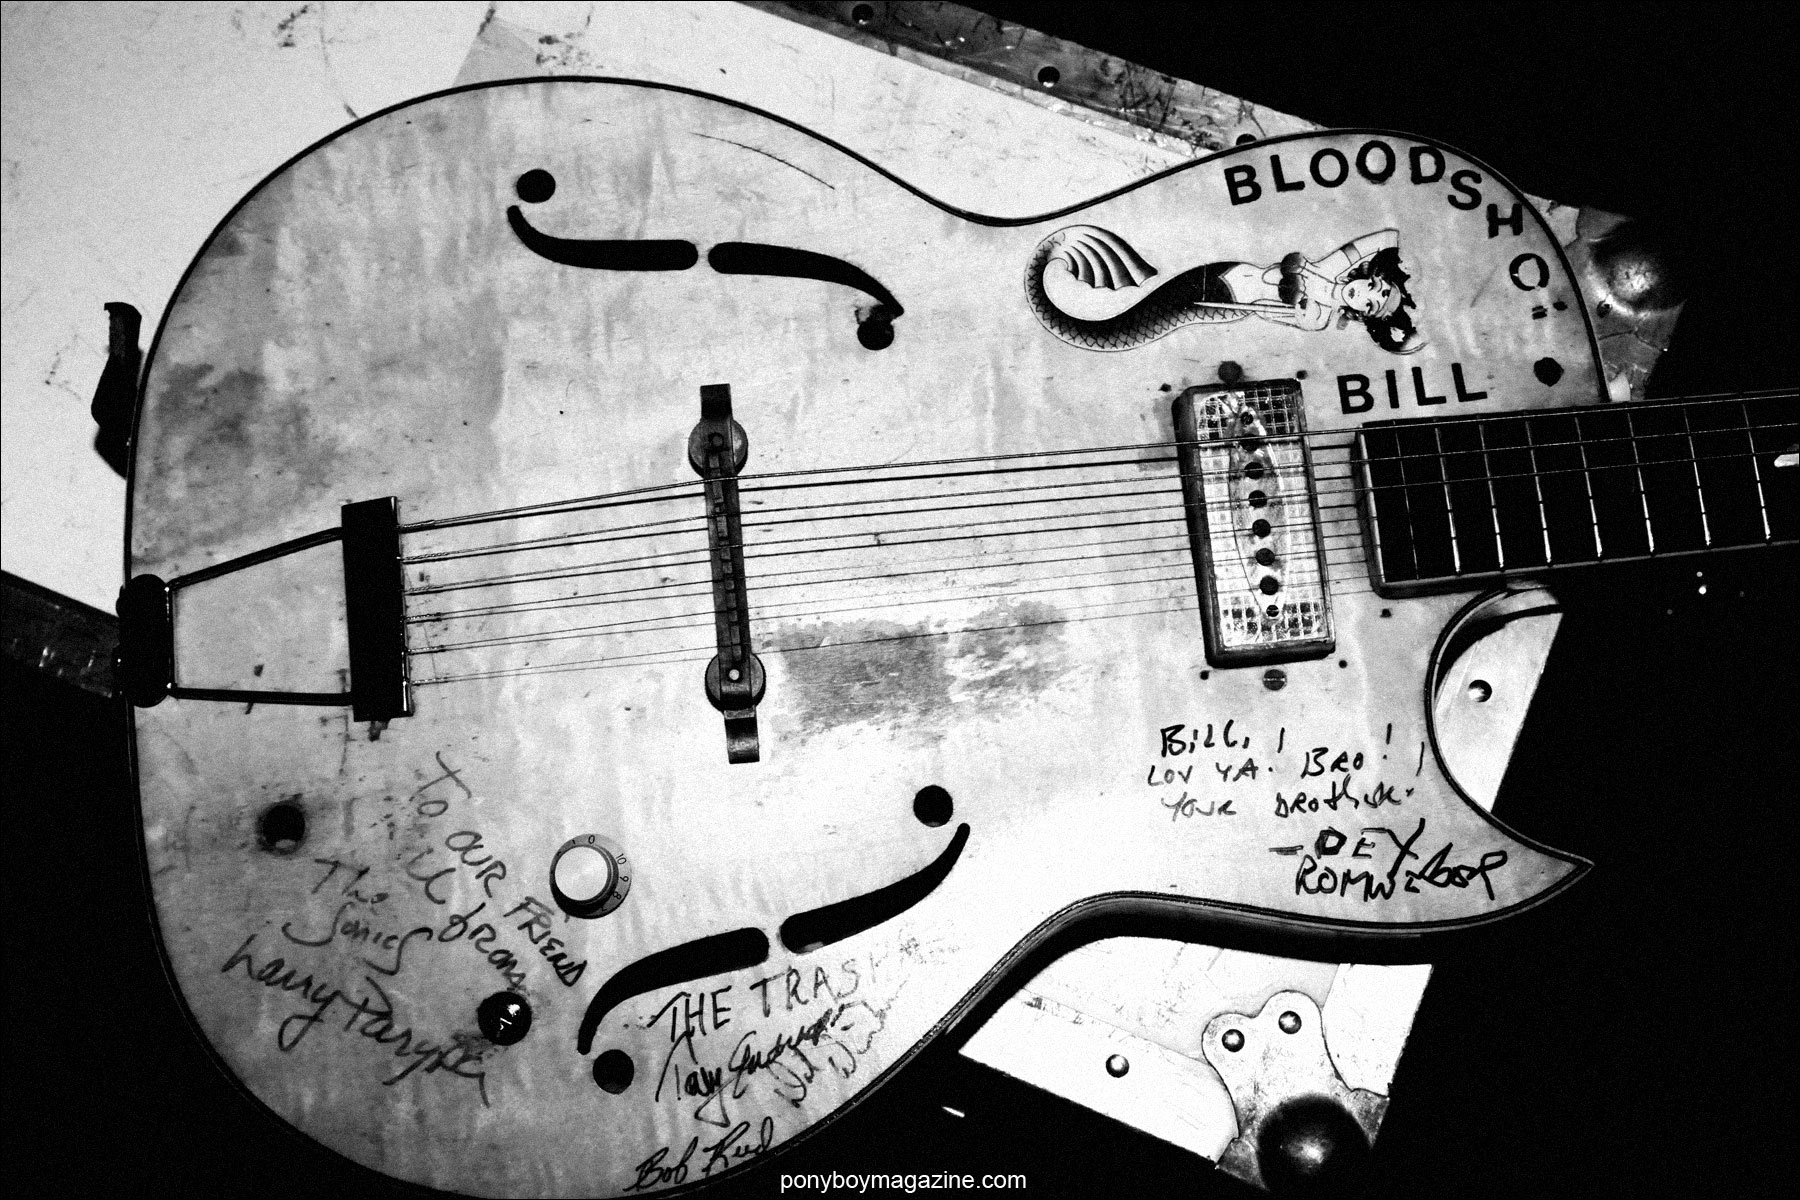 Photograph of Bloodshot Bill guitar by Alexander Thompson for Ponyboy Magazine.